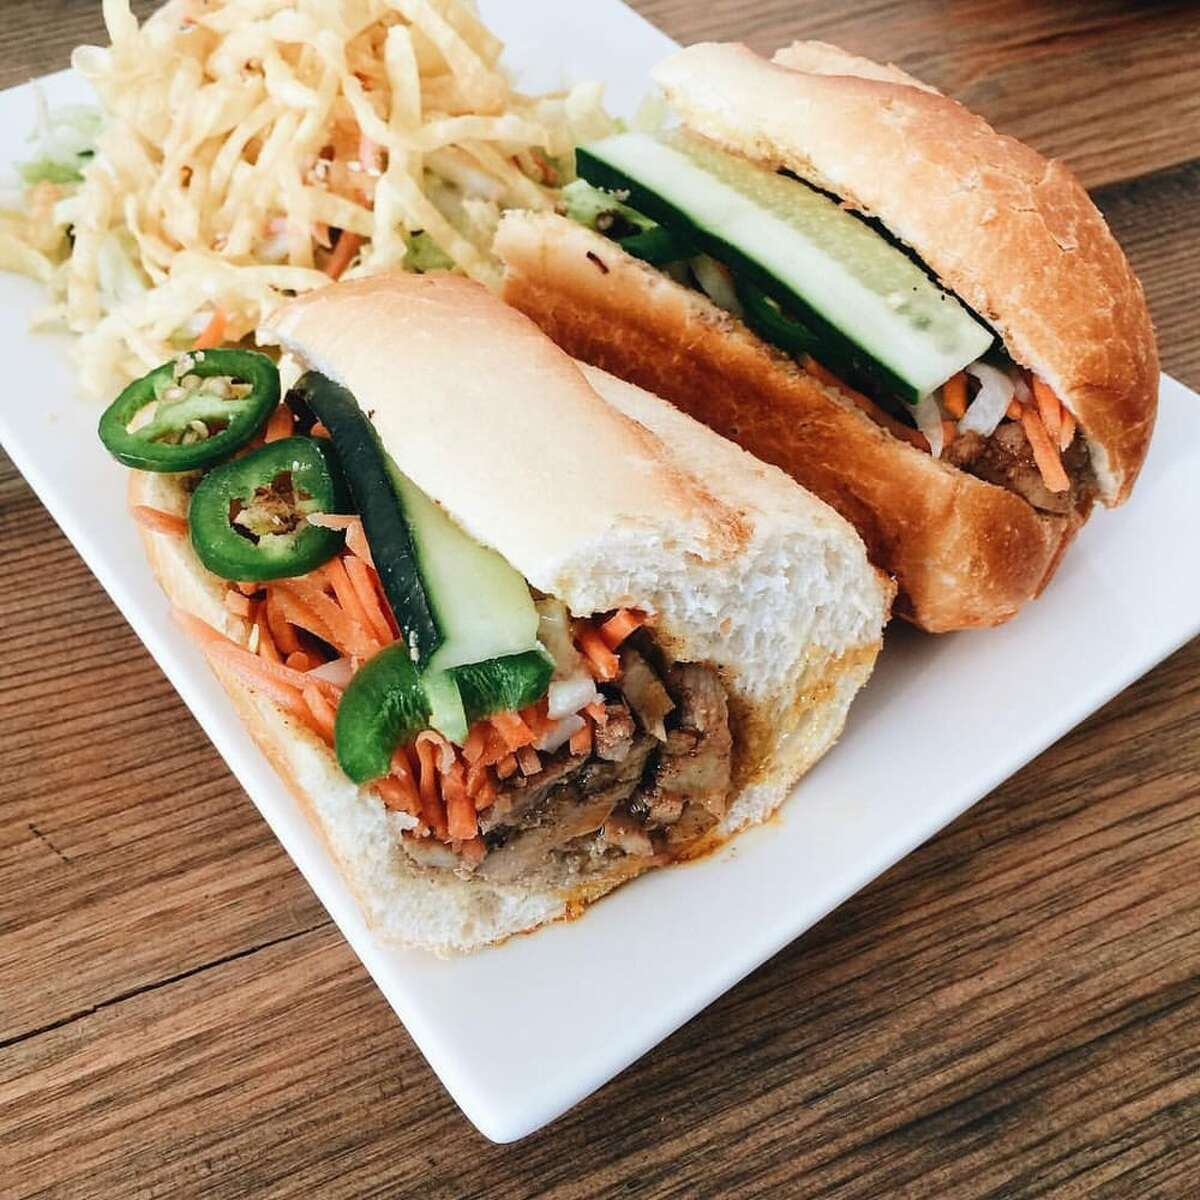 """10. Banh Town, Greenwood Anna D.: """"Wanted banh mi for lunch and this was the first place that popped up. It was sooooo good. I got the Five Spice Grilled Chicken and spring rolls. Plenty of food, reasonable price and super tasty!"""""""